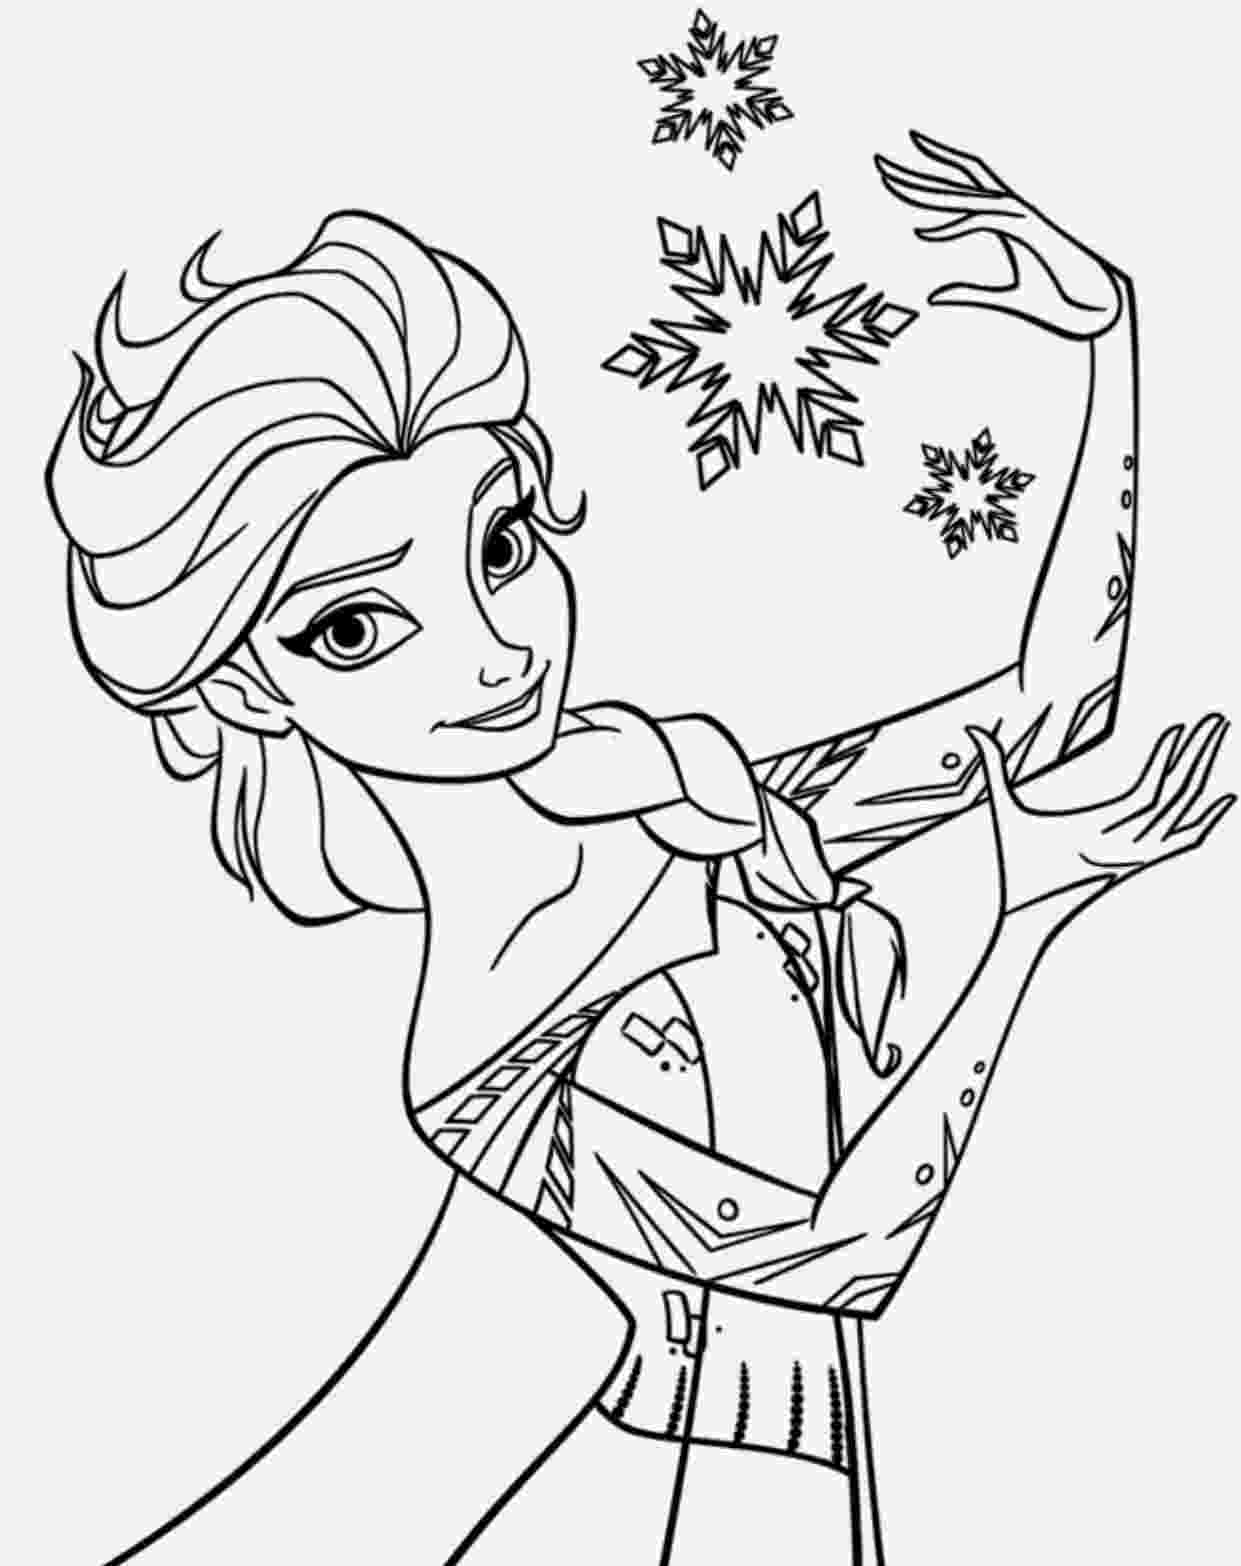 frozen color pages 15 beautiful disney frozen coloring pages free instant frozen color pages